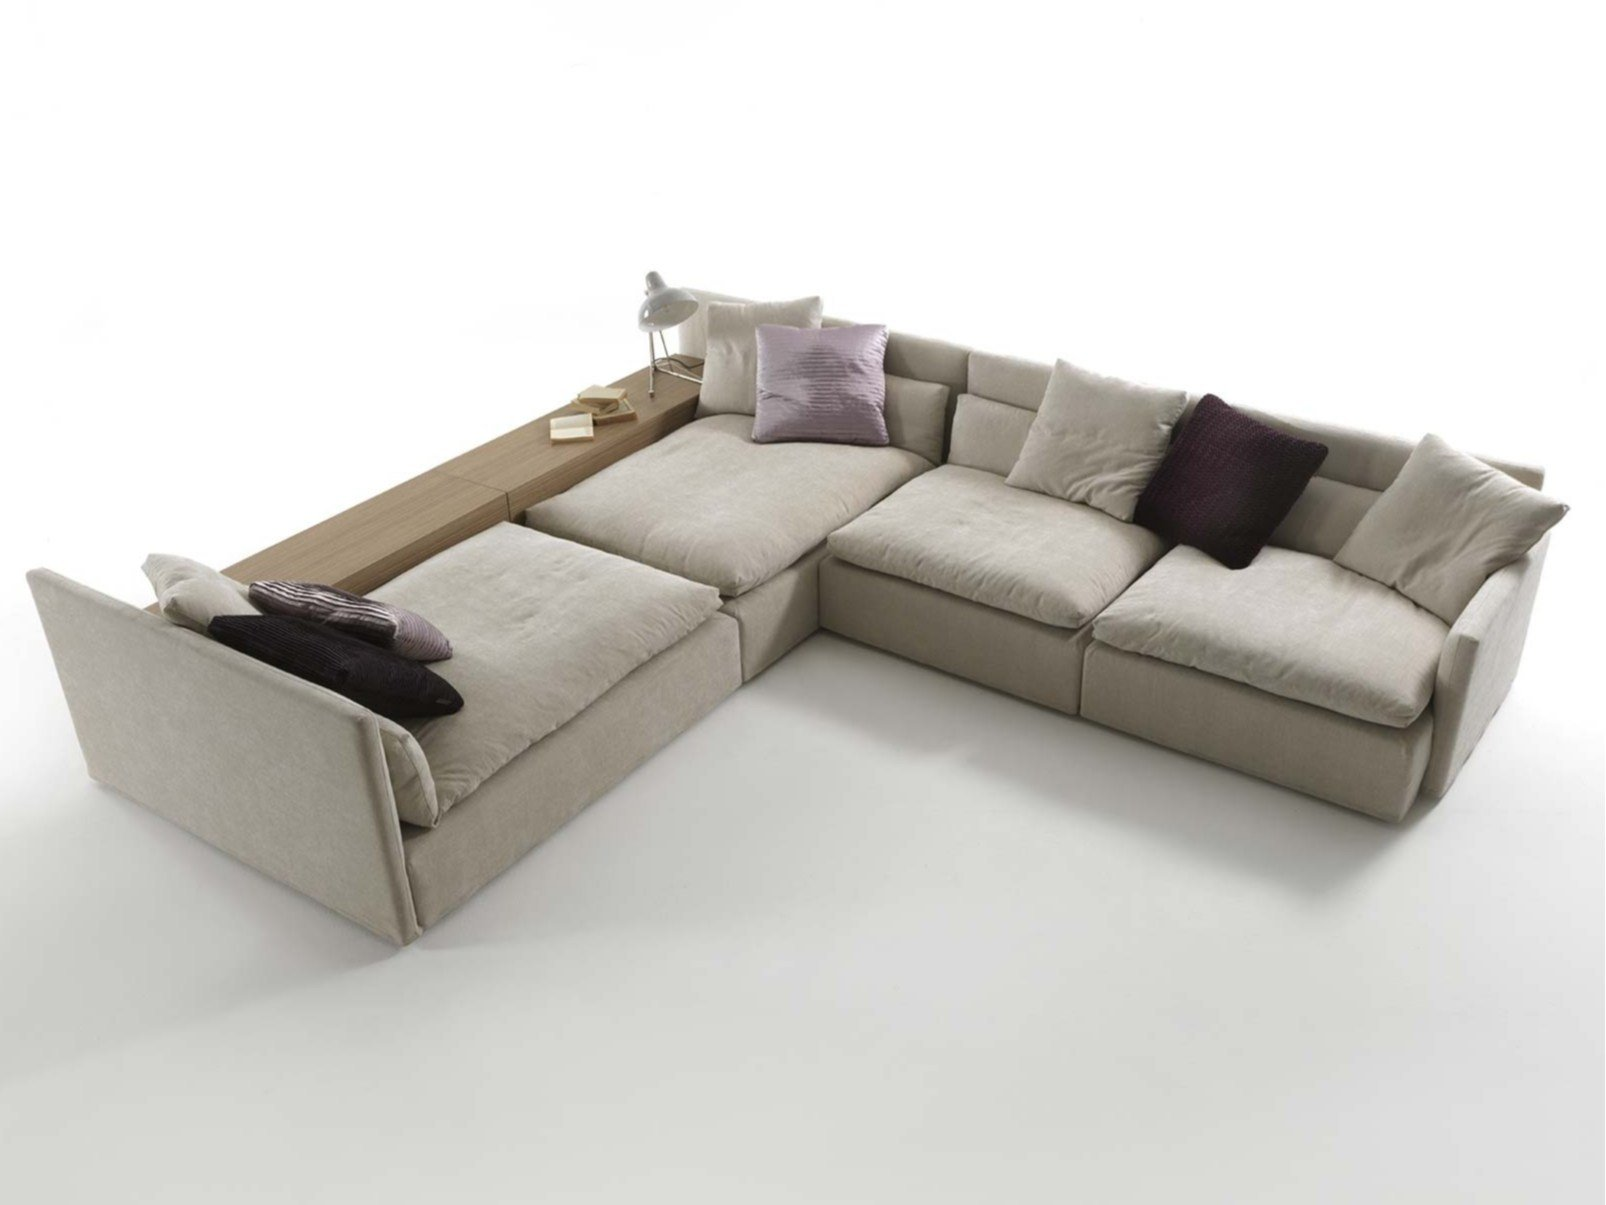 Domino fabric sofa by frigerio poltrone e divani - Poltrone e sofa paris ...